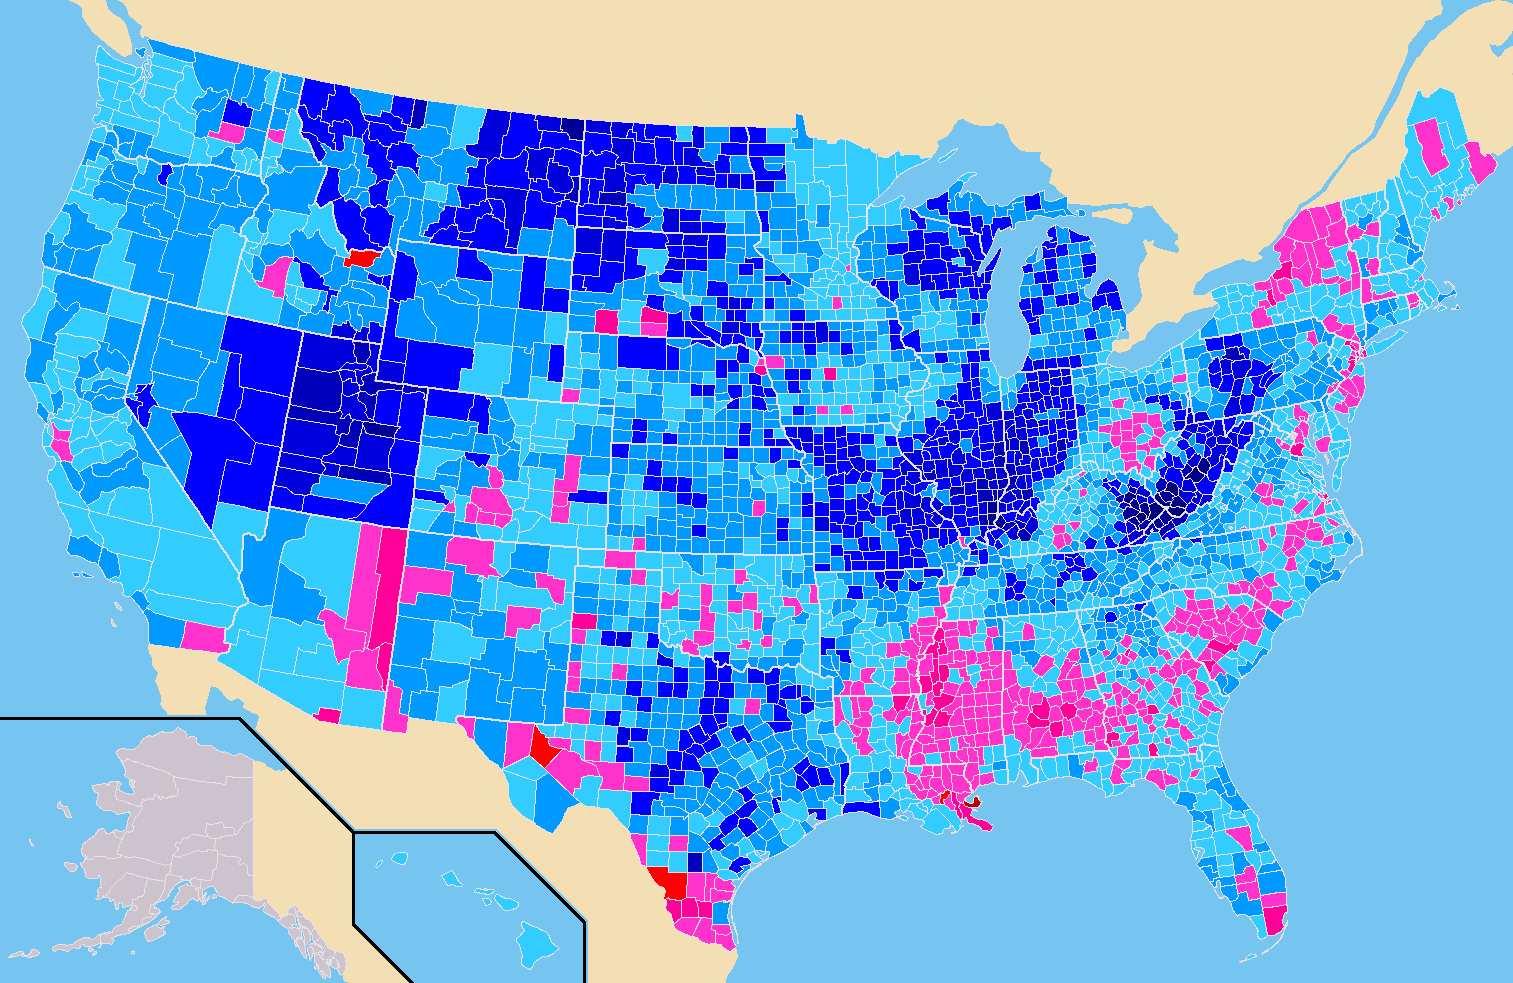 November World Elections - Map of county votes for us election